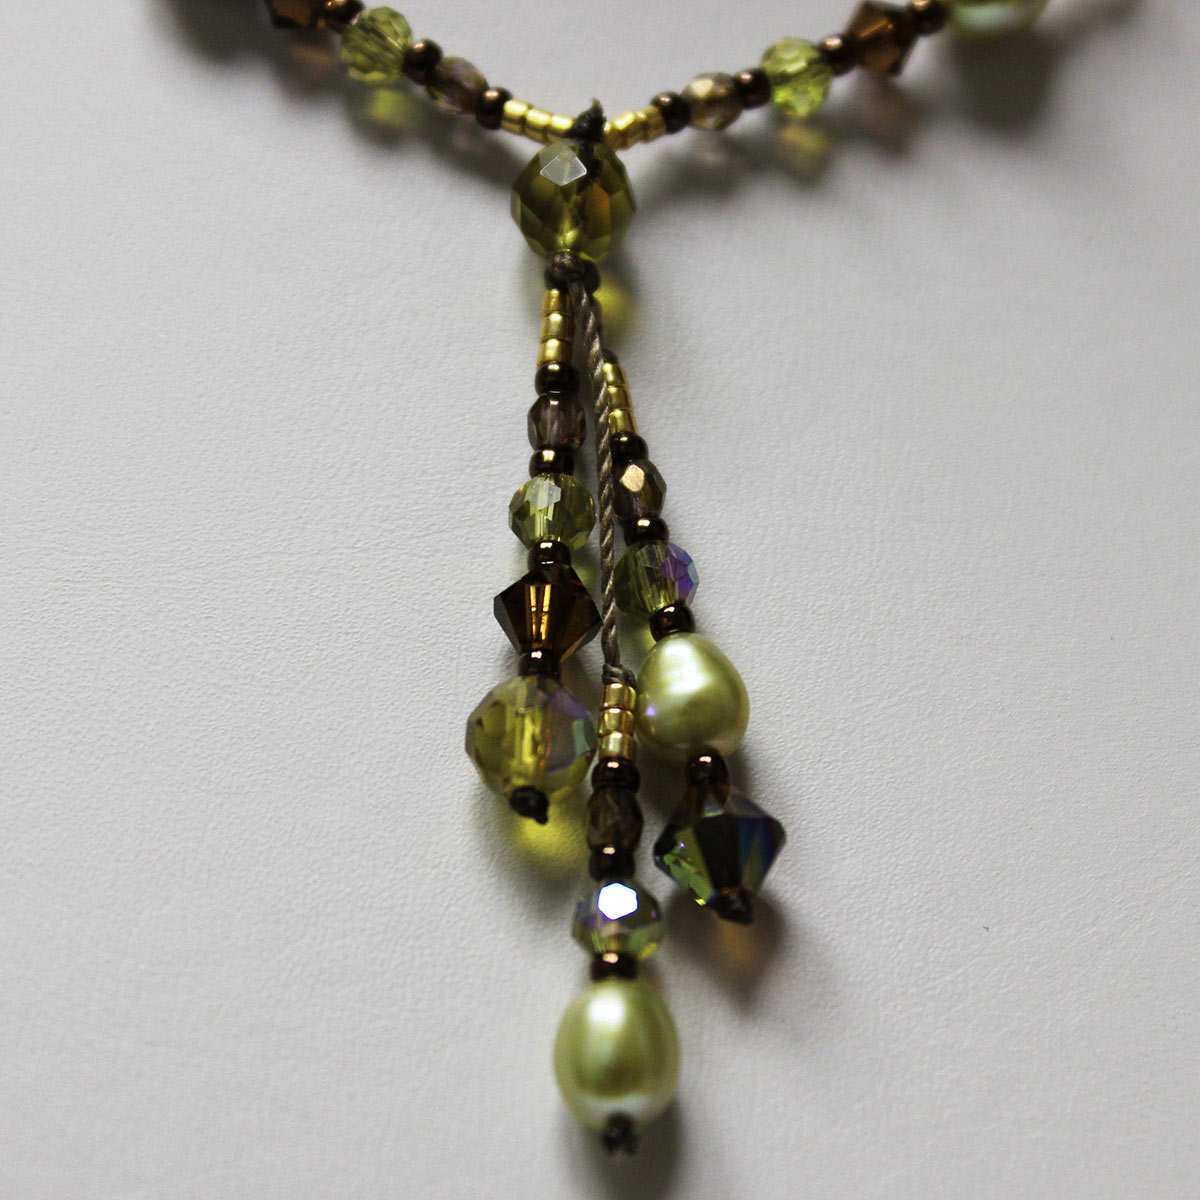 crystal drop necklace, olivine green beads, gold crystal beads, gold necklace, gold handmade necklace